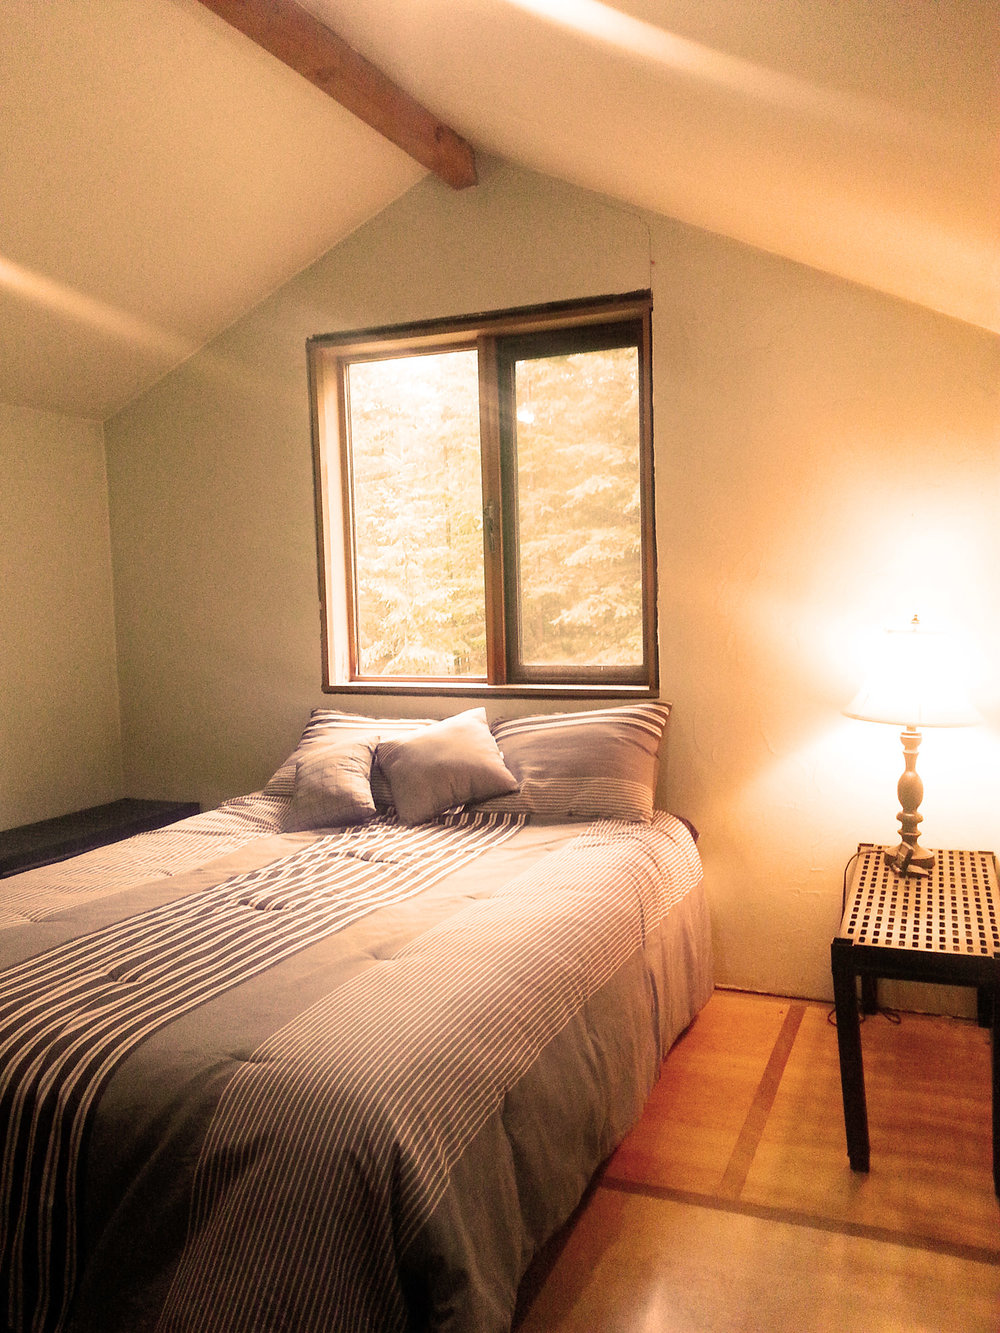 PACKAGE 1 - PRIVATE ROOM W/ SHARED BATH  Features: 3 Gourmet Meals per day, Shared Bath, Forest Views, King or Queen Size Bed                  PKG 1 $2199   CDN/ per person